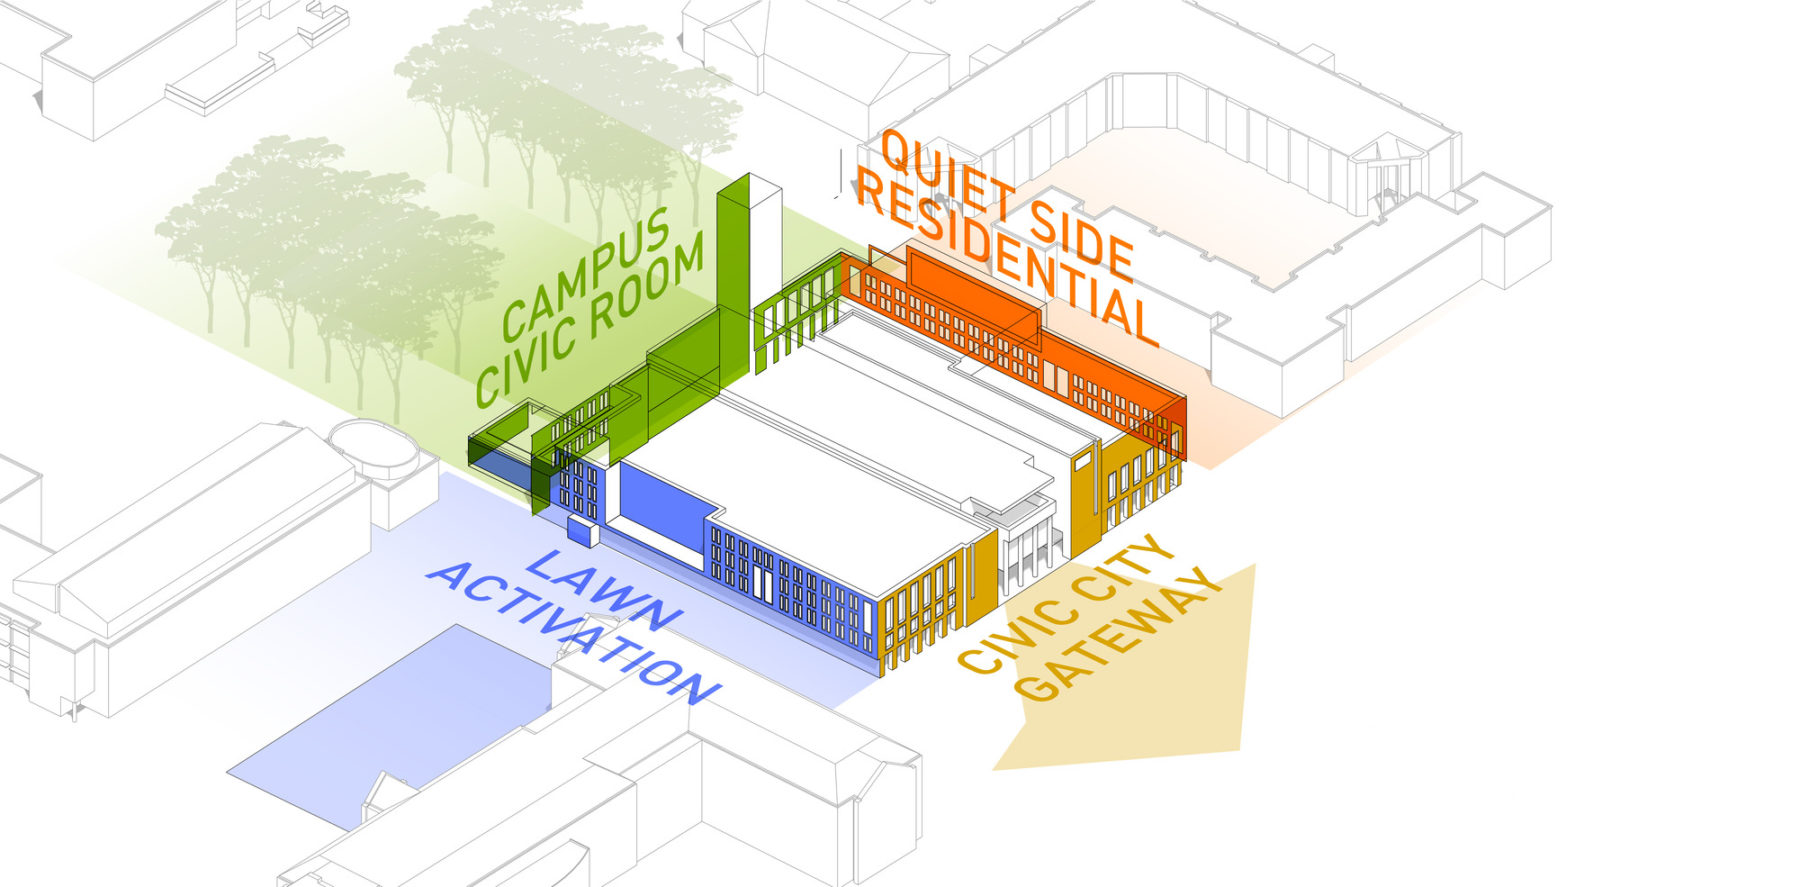 diagram of building's connections to surrounding